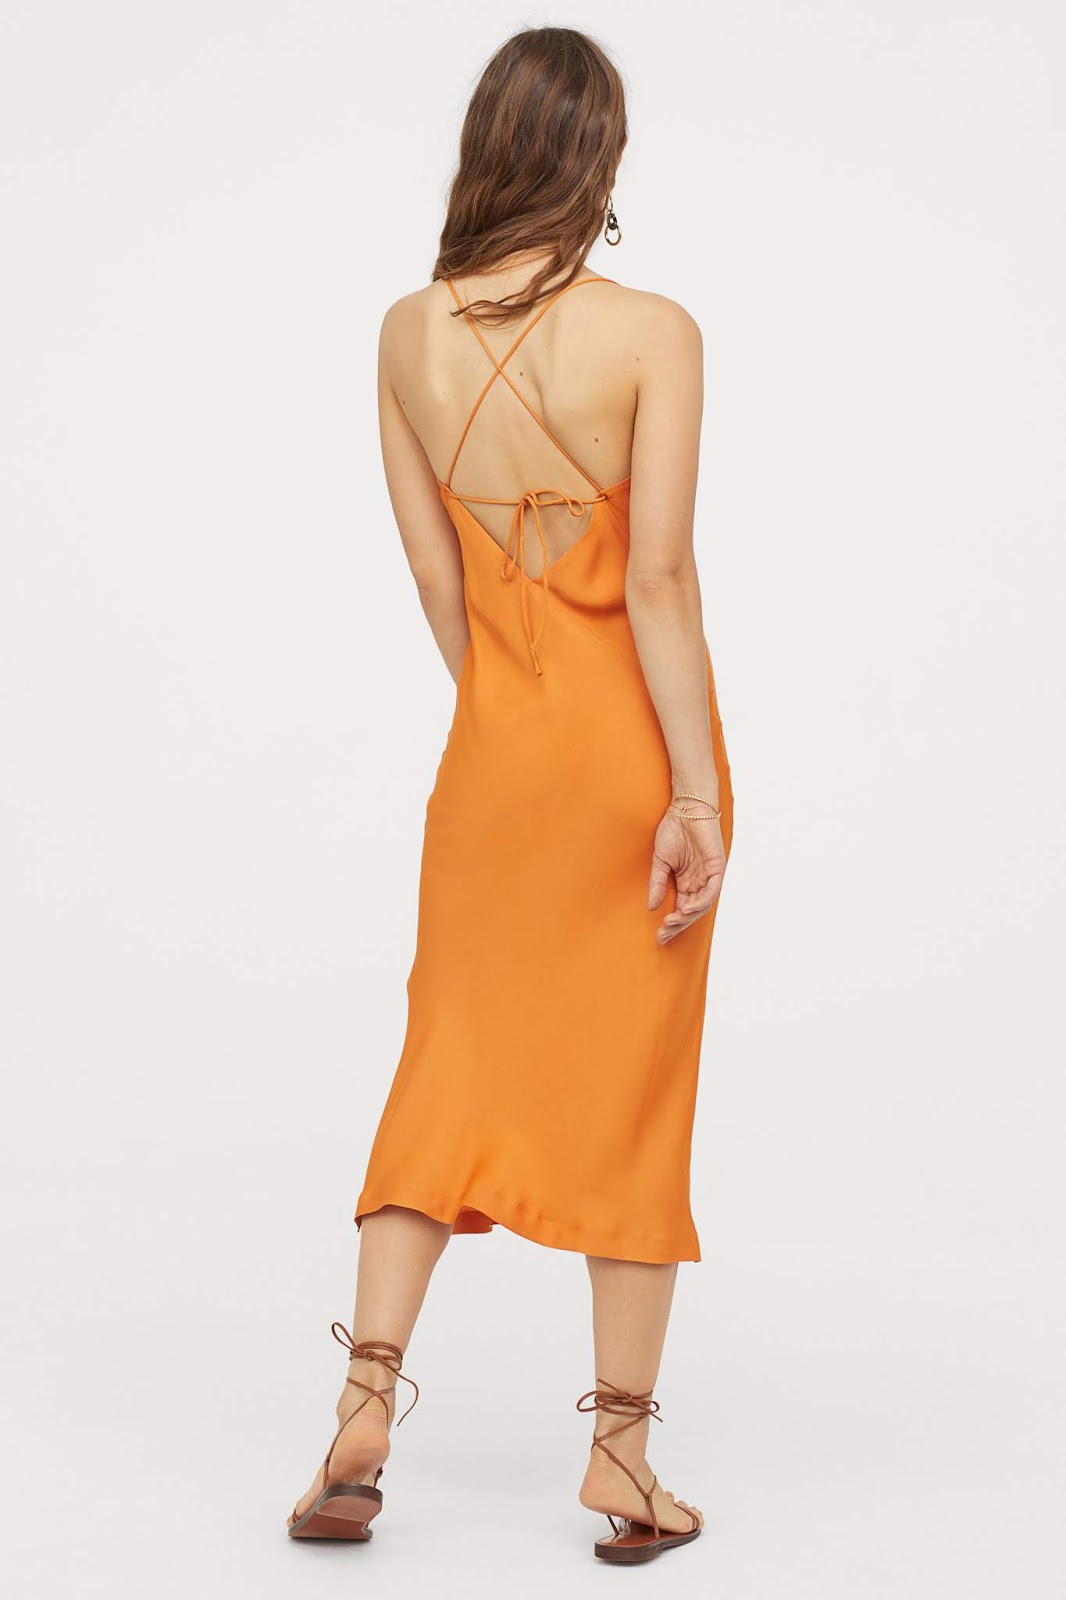 Orange Satin Slip Dress Outfit Idea — Vacation Style or Date Night Style